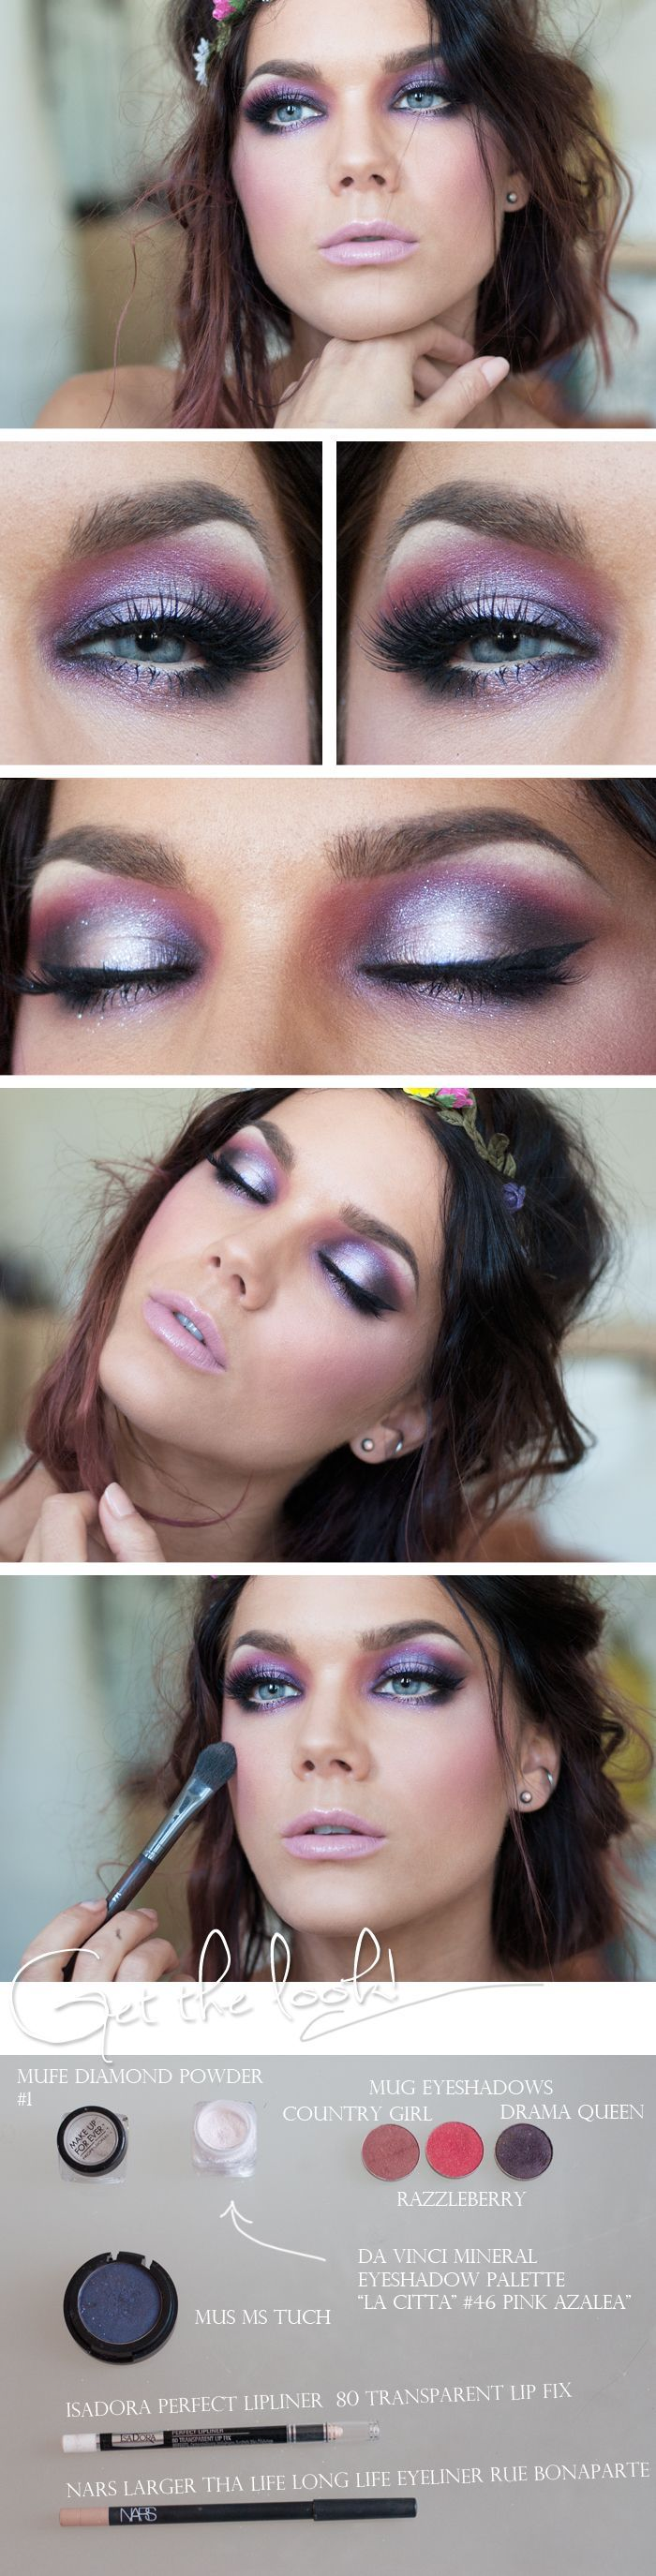 Ethereal purple eye makeup                                                                                                                                                                                 More